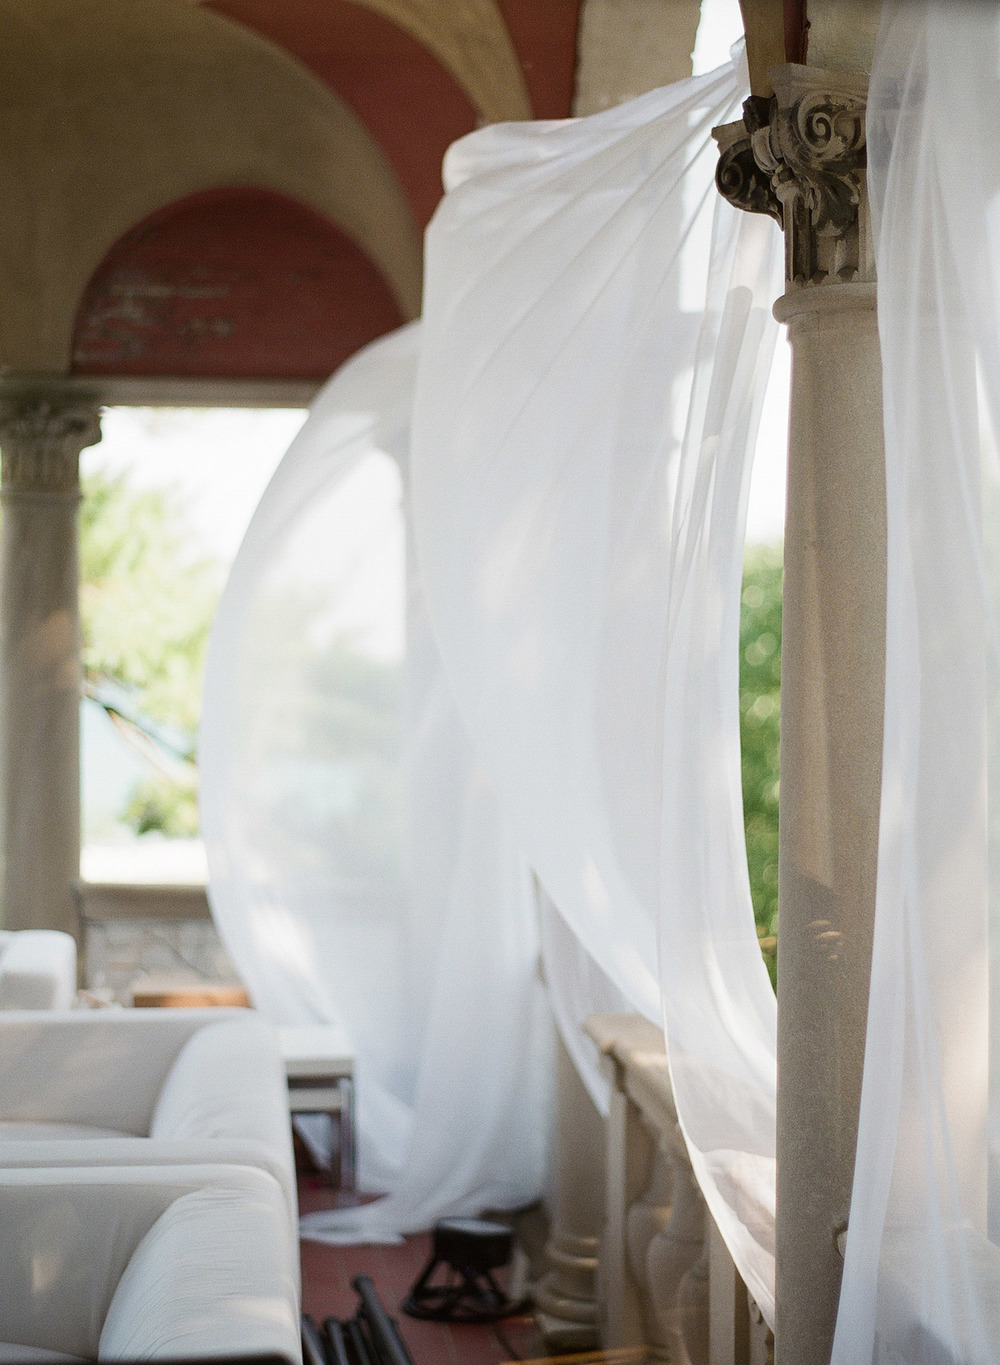 wind blows through silk at this Italian Destination Wedding at the Villa Terrace - a favorite wedding venue by Destination wedding photographer Lexia Frank who is a film photographer for weddings